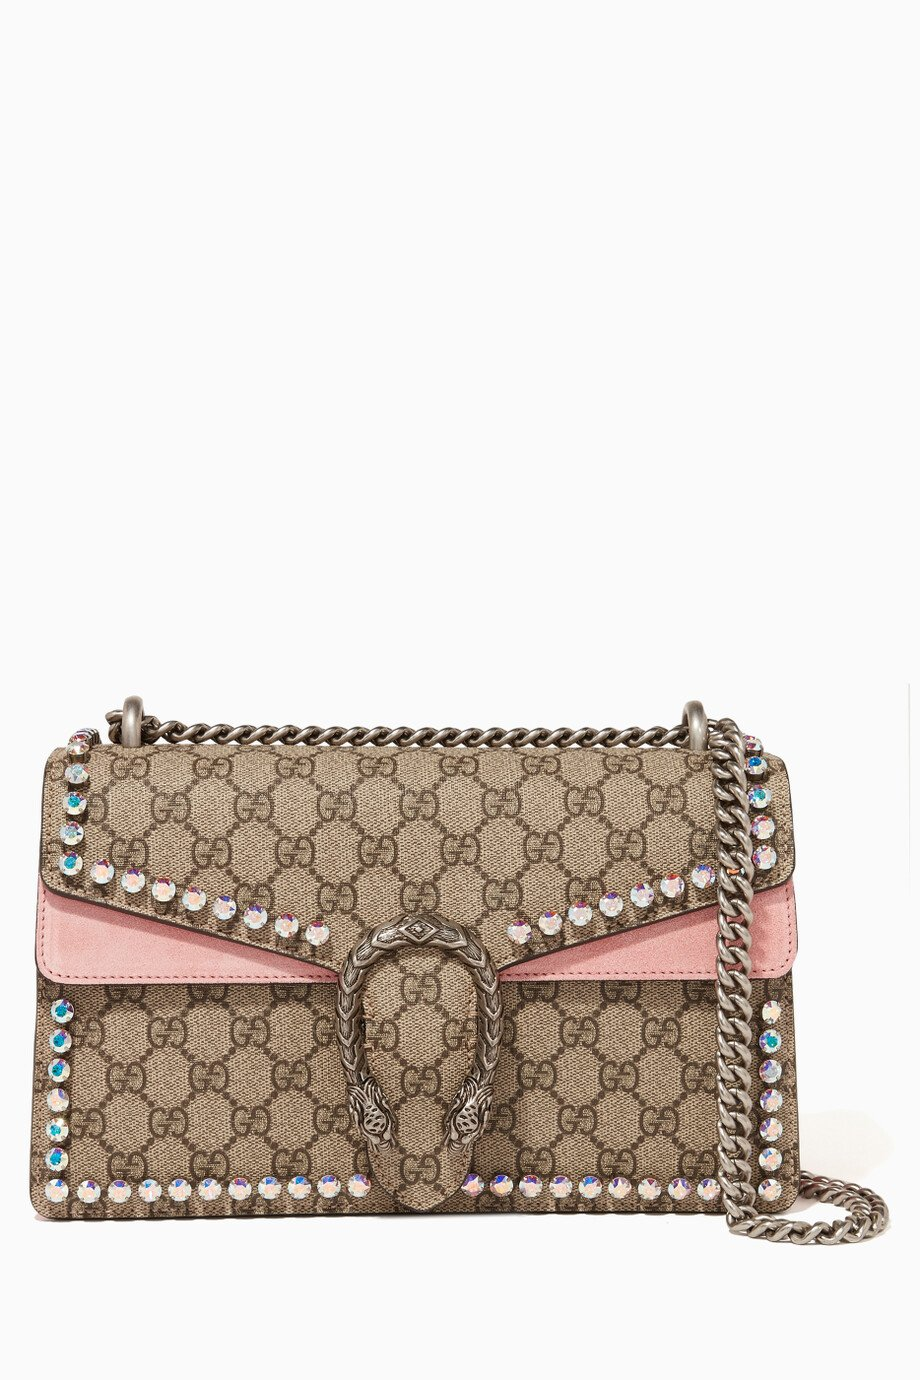 d3b11b3a3c891 Shop Gucci Pink Beige   Pink Dionysus GG Supreme Shoulder Bag for Women